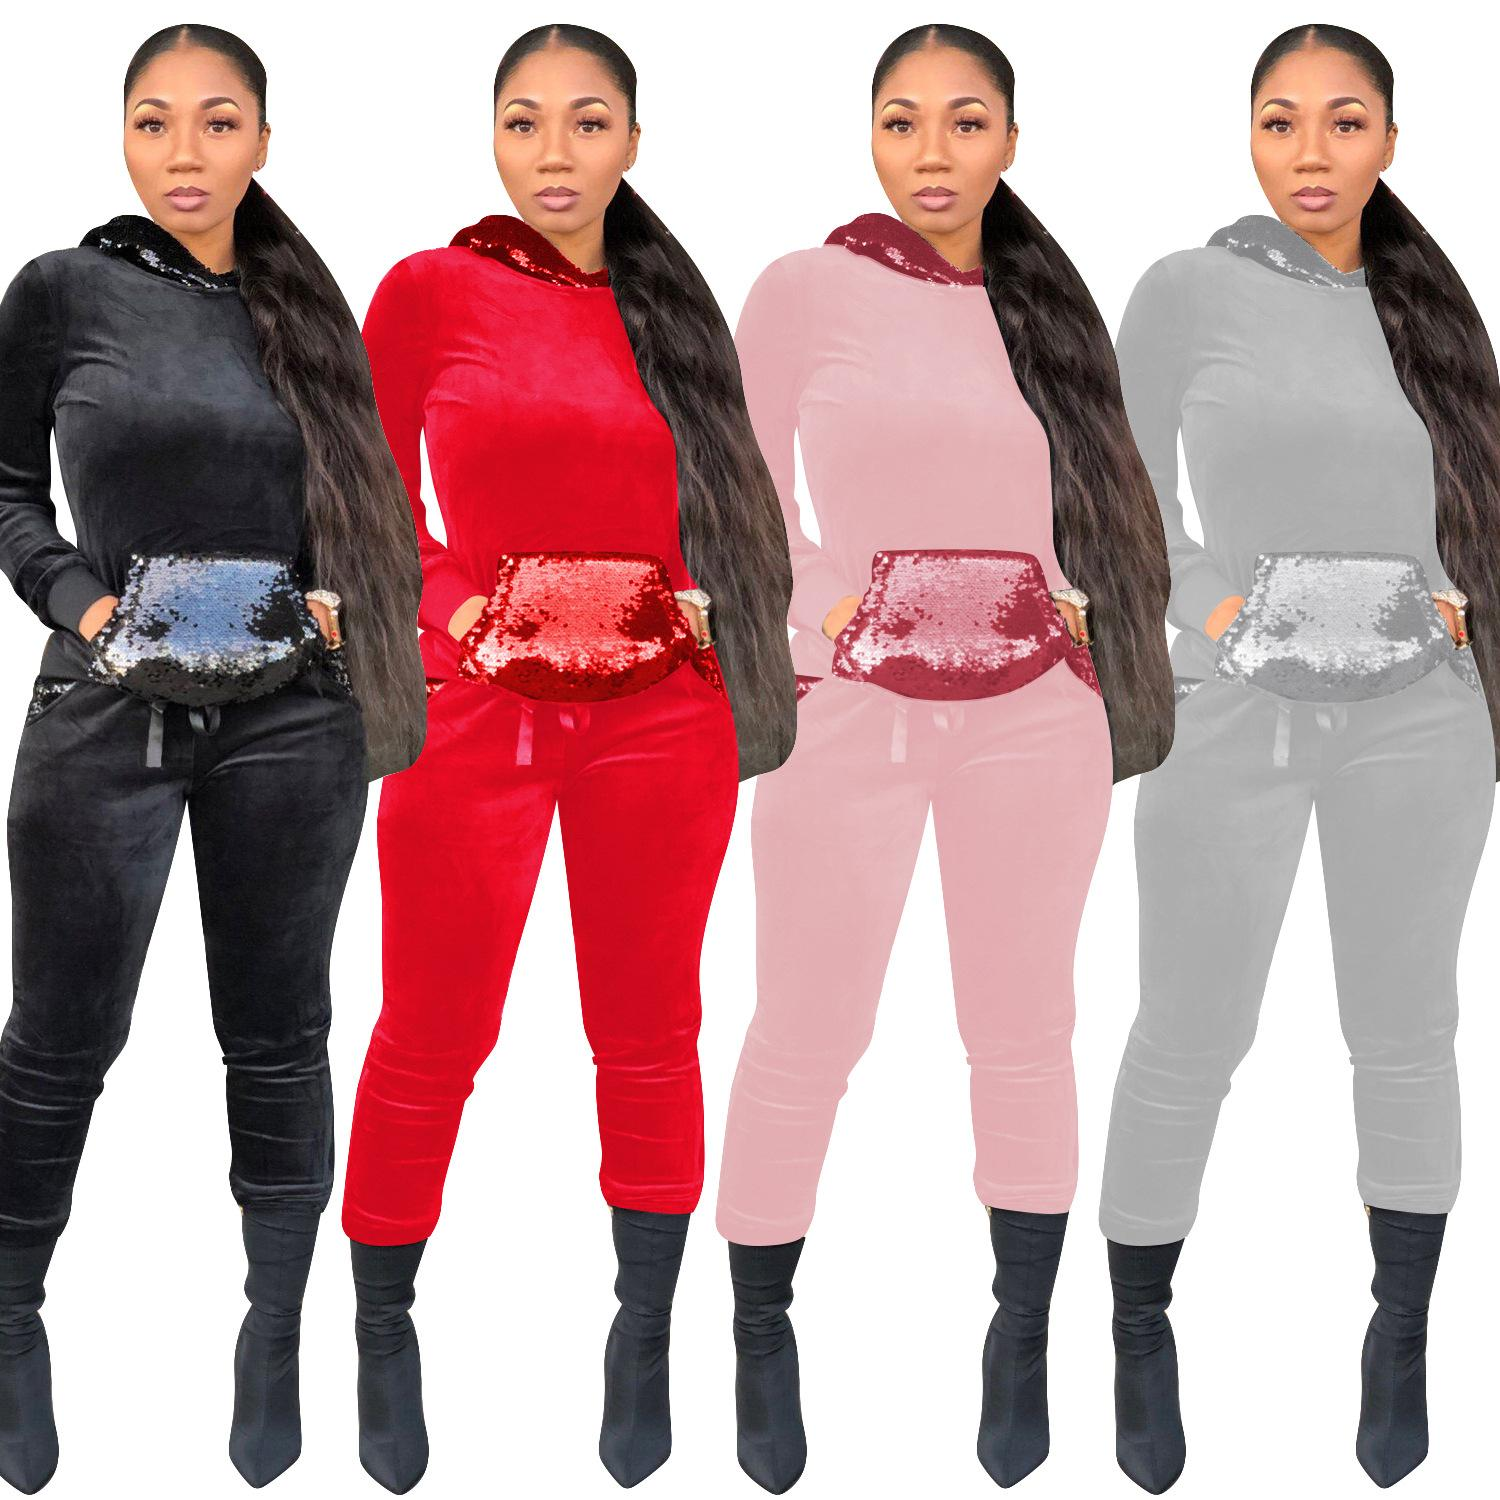 Hooded Velour 2 Piece Set 2018 Winter Women Sequin Front Pockets Tracksuits Casual Long Sleeve Hoodies Pants Sets Active Outfits